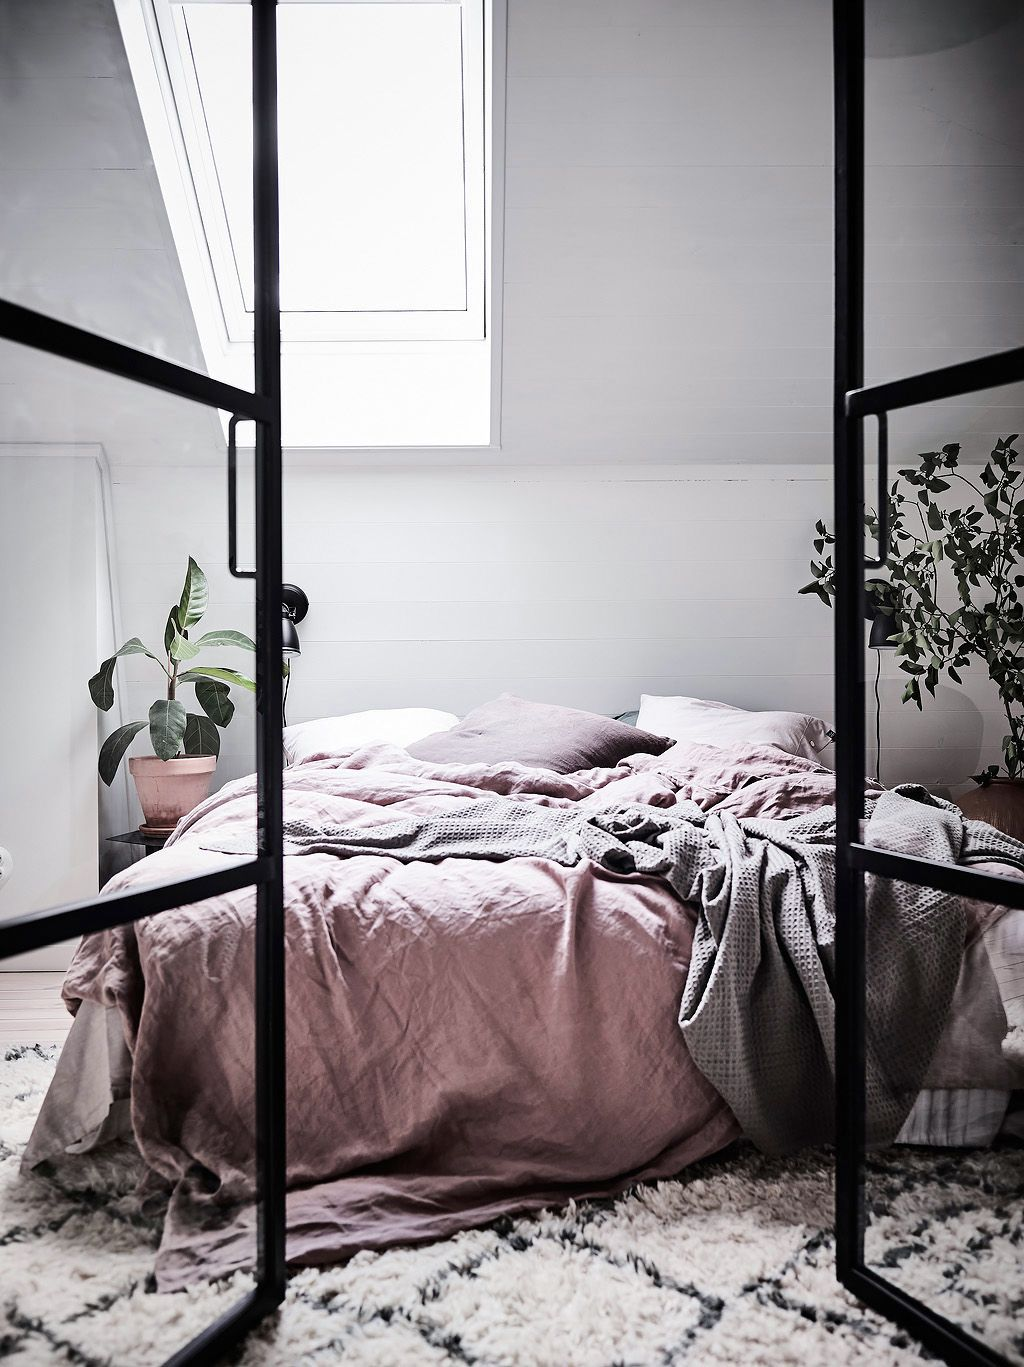 Factory windows open to a sensual pink strewn linen bed cover